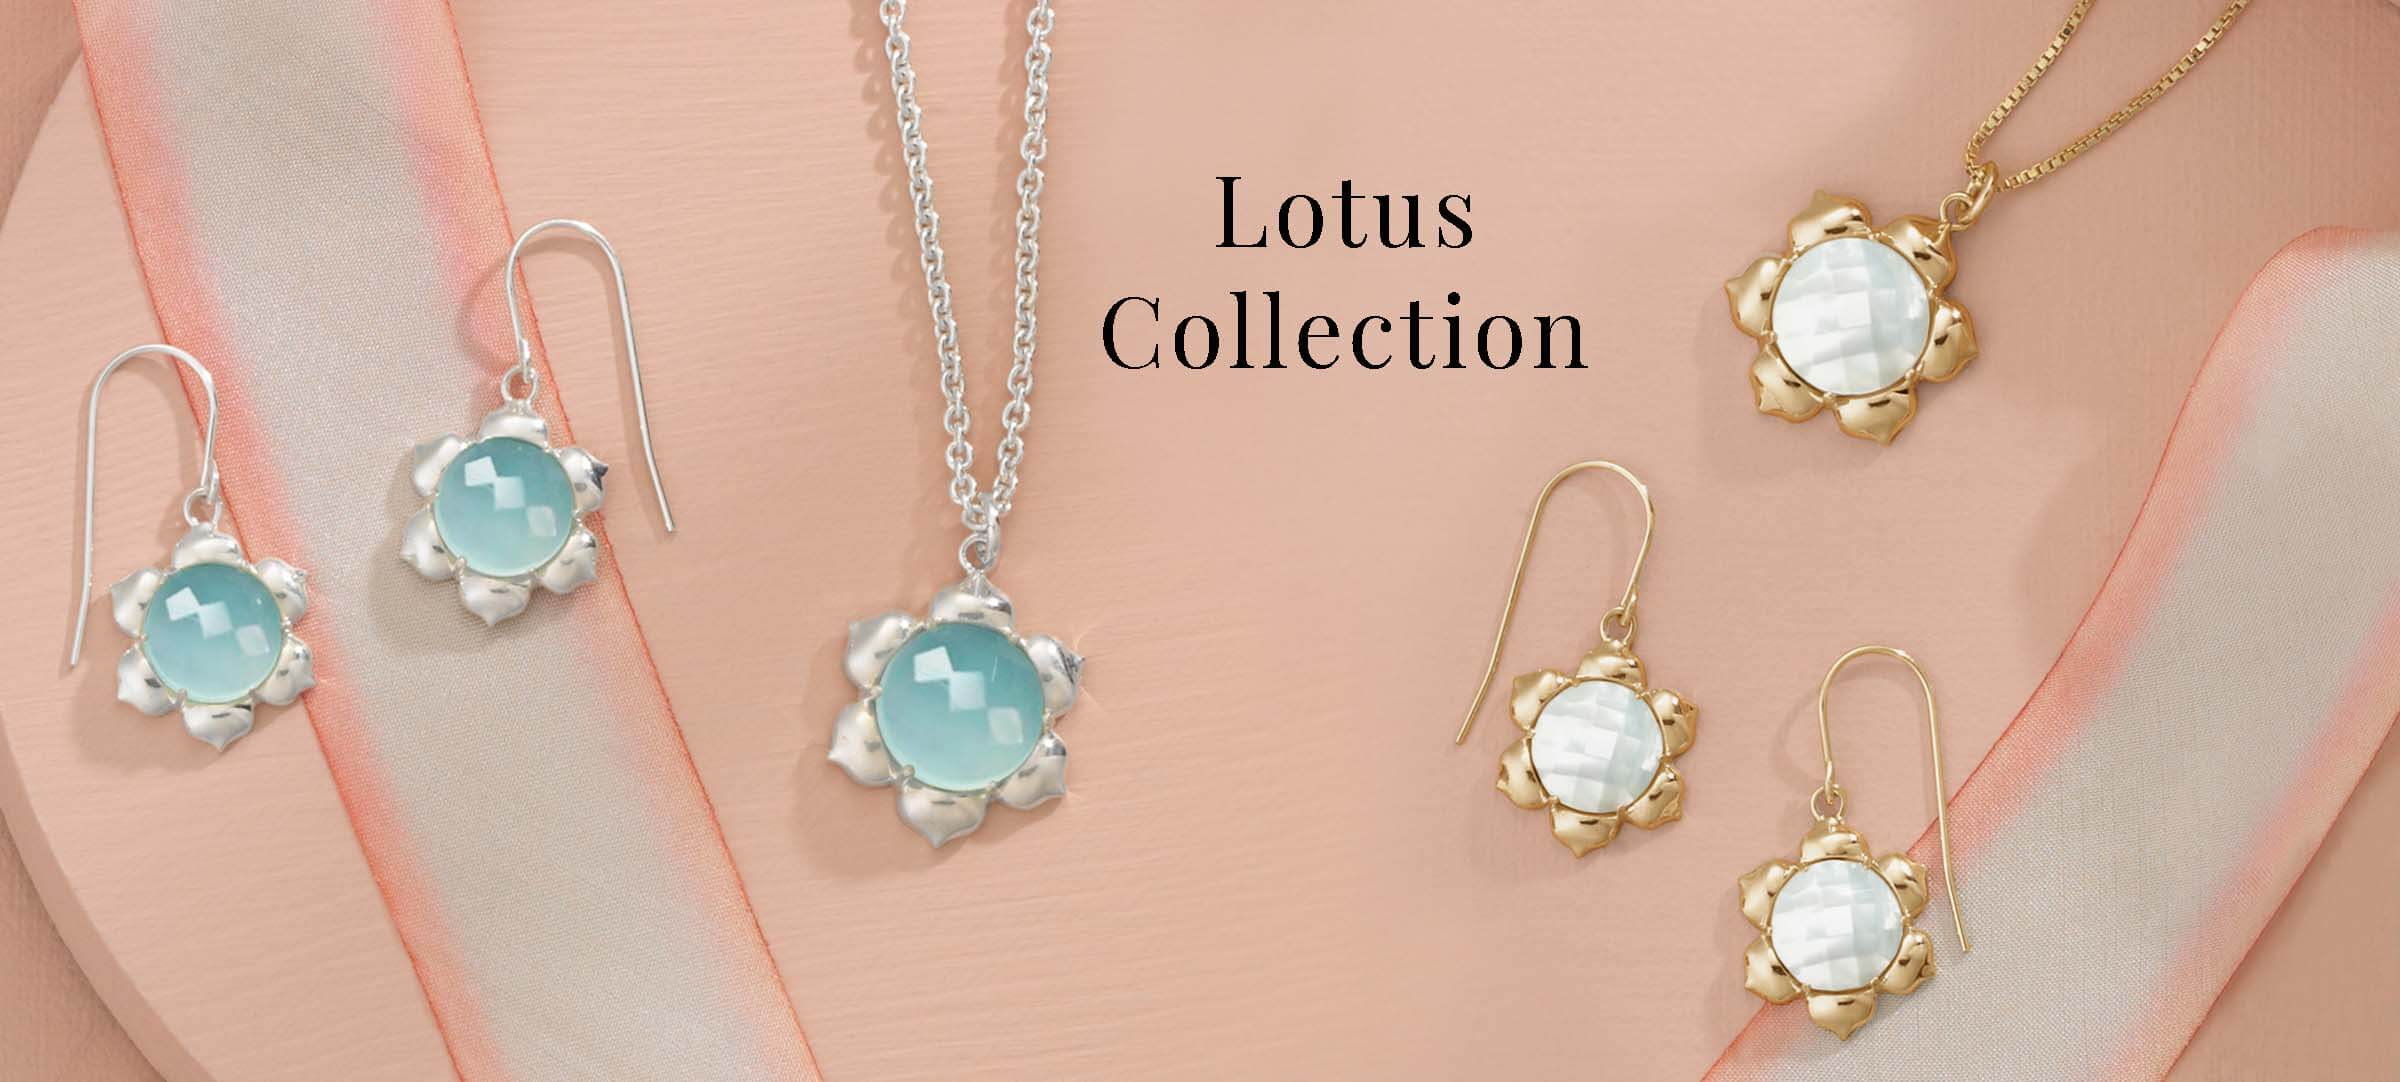 lotus-collection-reduced2.jpg